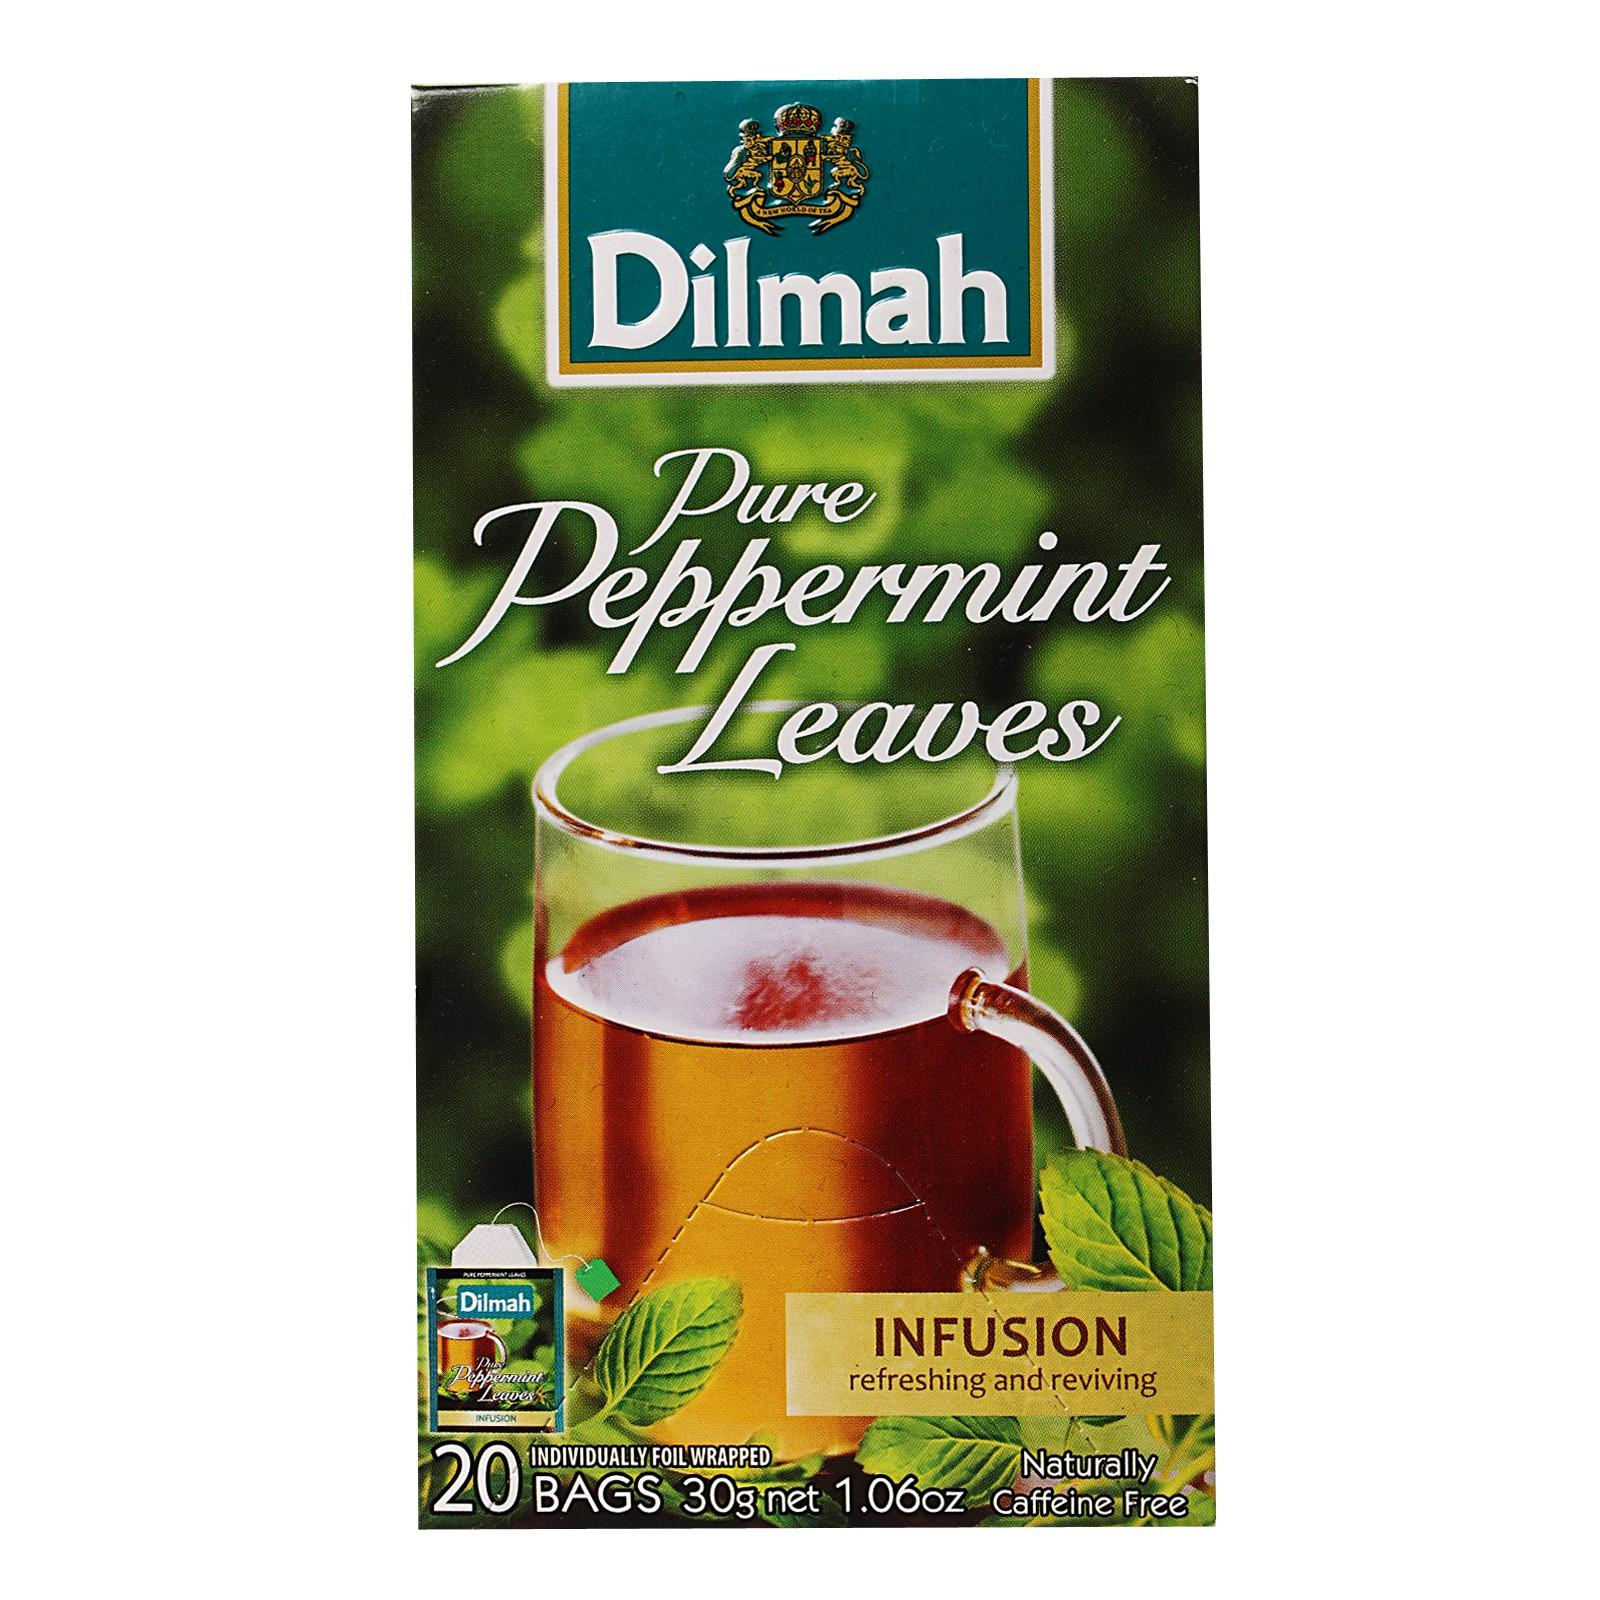 Dilmah Pure Peppermint Leaves By Redmart.